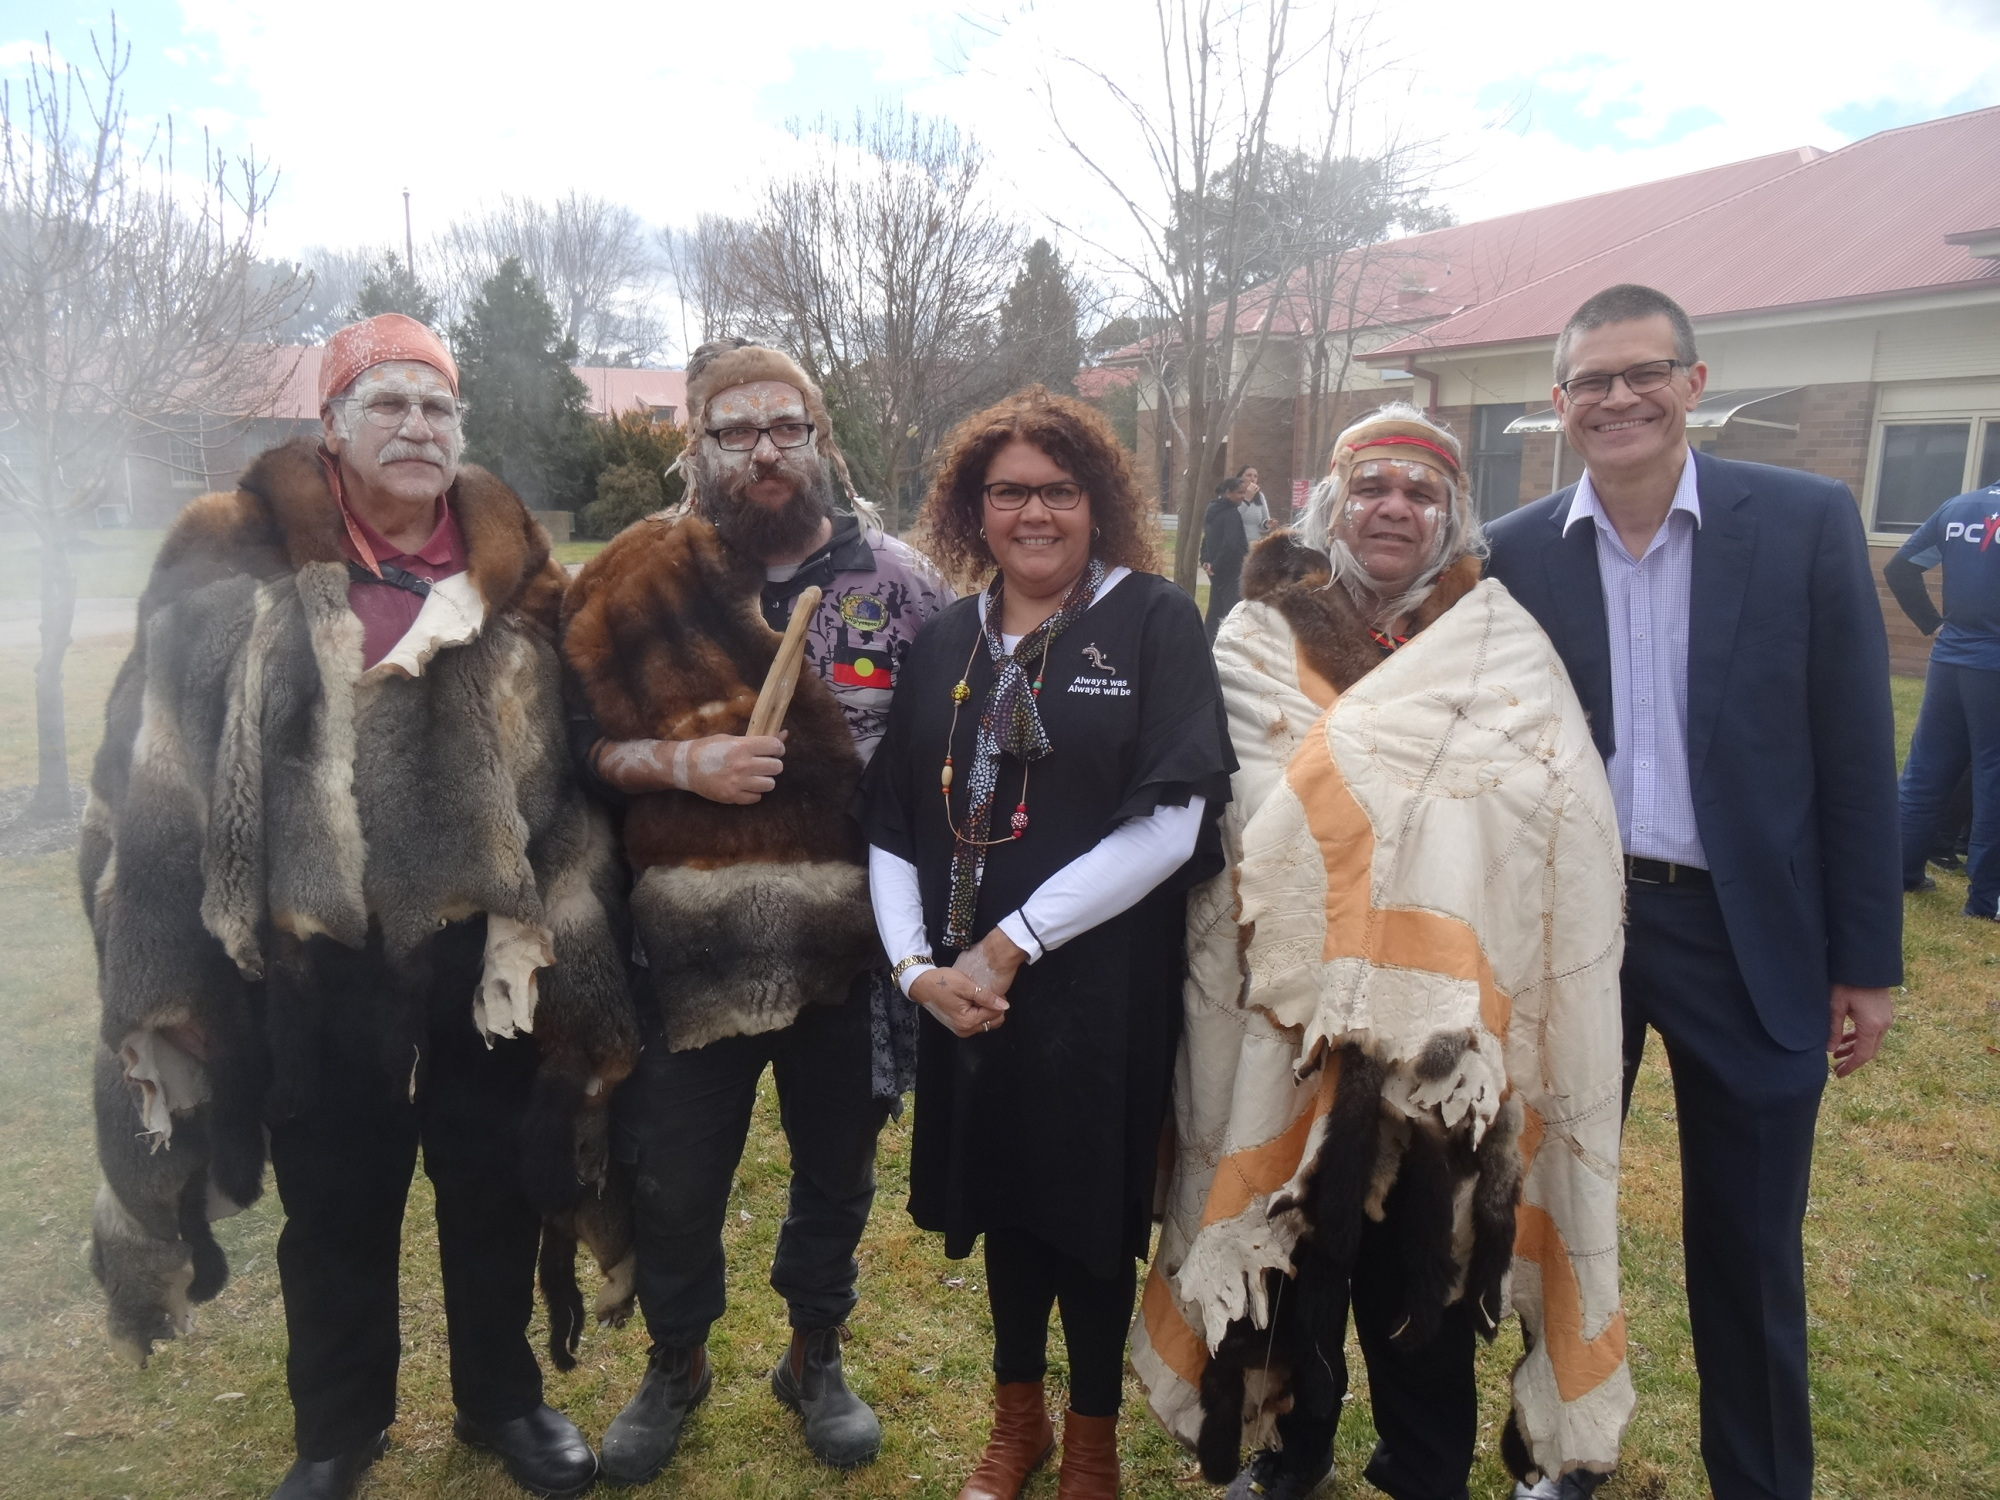 This image shows Wiradyuri Elders Mallyan, Yanhadarrambal, Wirribee, and Dinawan Dyirribang with Charles Sturt Vice-Chancellor Professor Andrew Vann during the opening of a cultural hub for Wiradjuri elders on 4 July 2019. This photograph helps toillustrate the continuance of Wiradjuri culture and traditions more than 200 years after the founding of Bathurst in 1815.